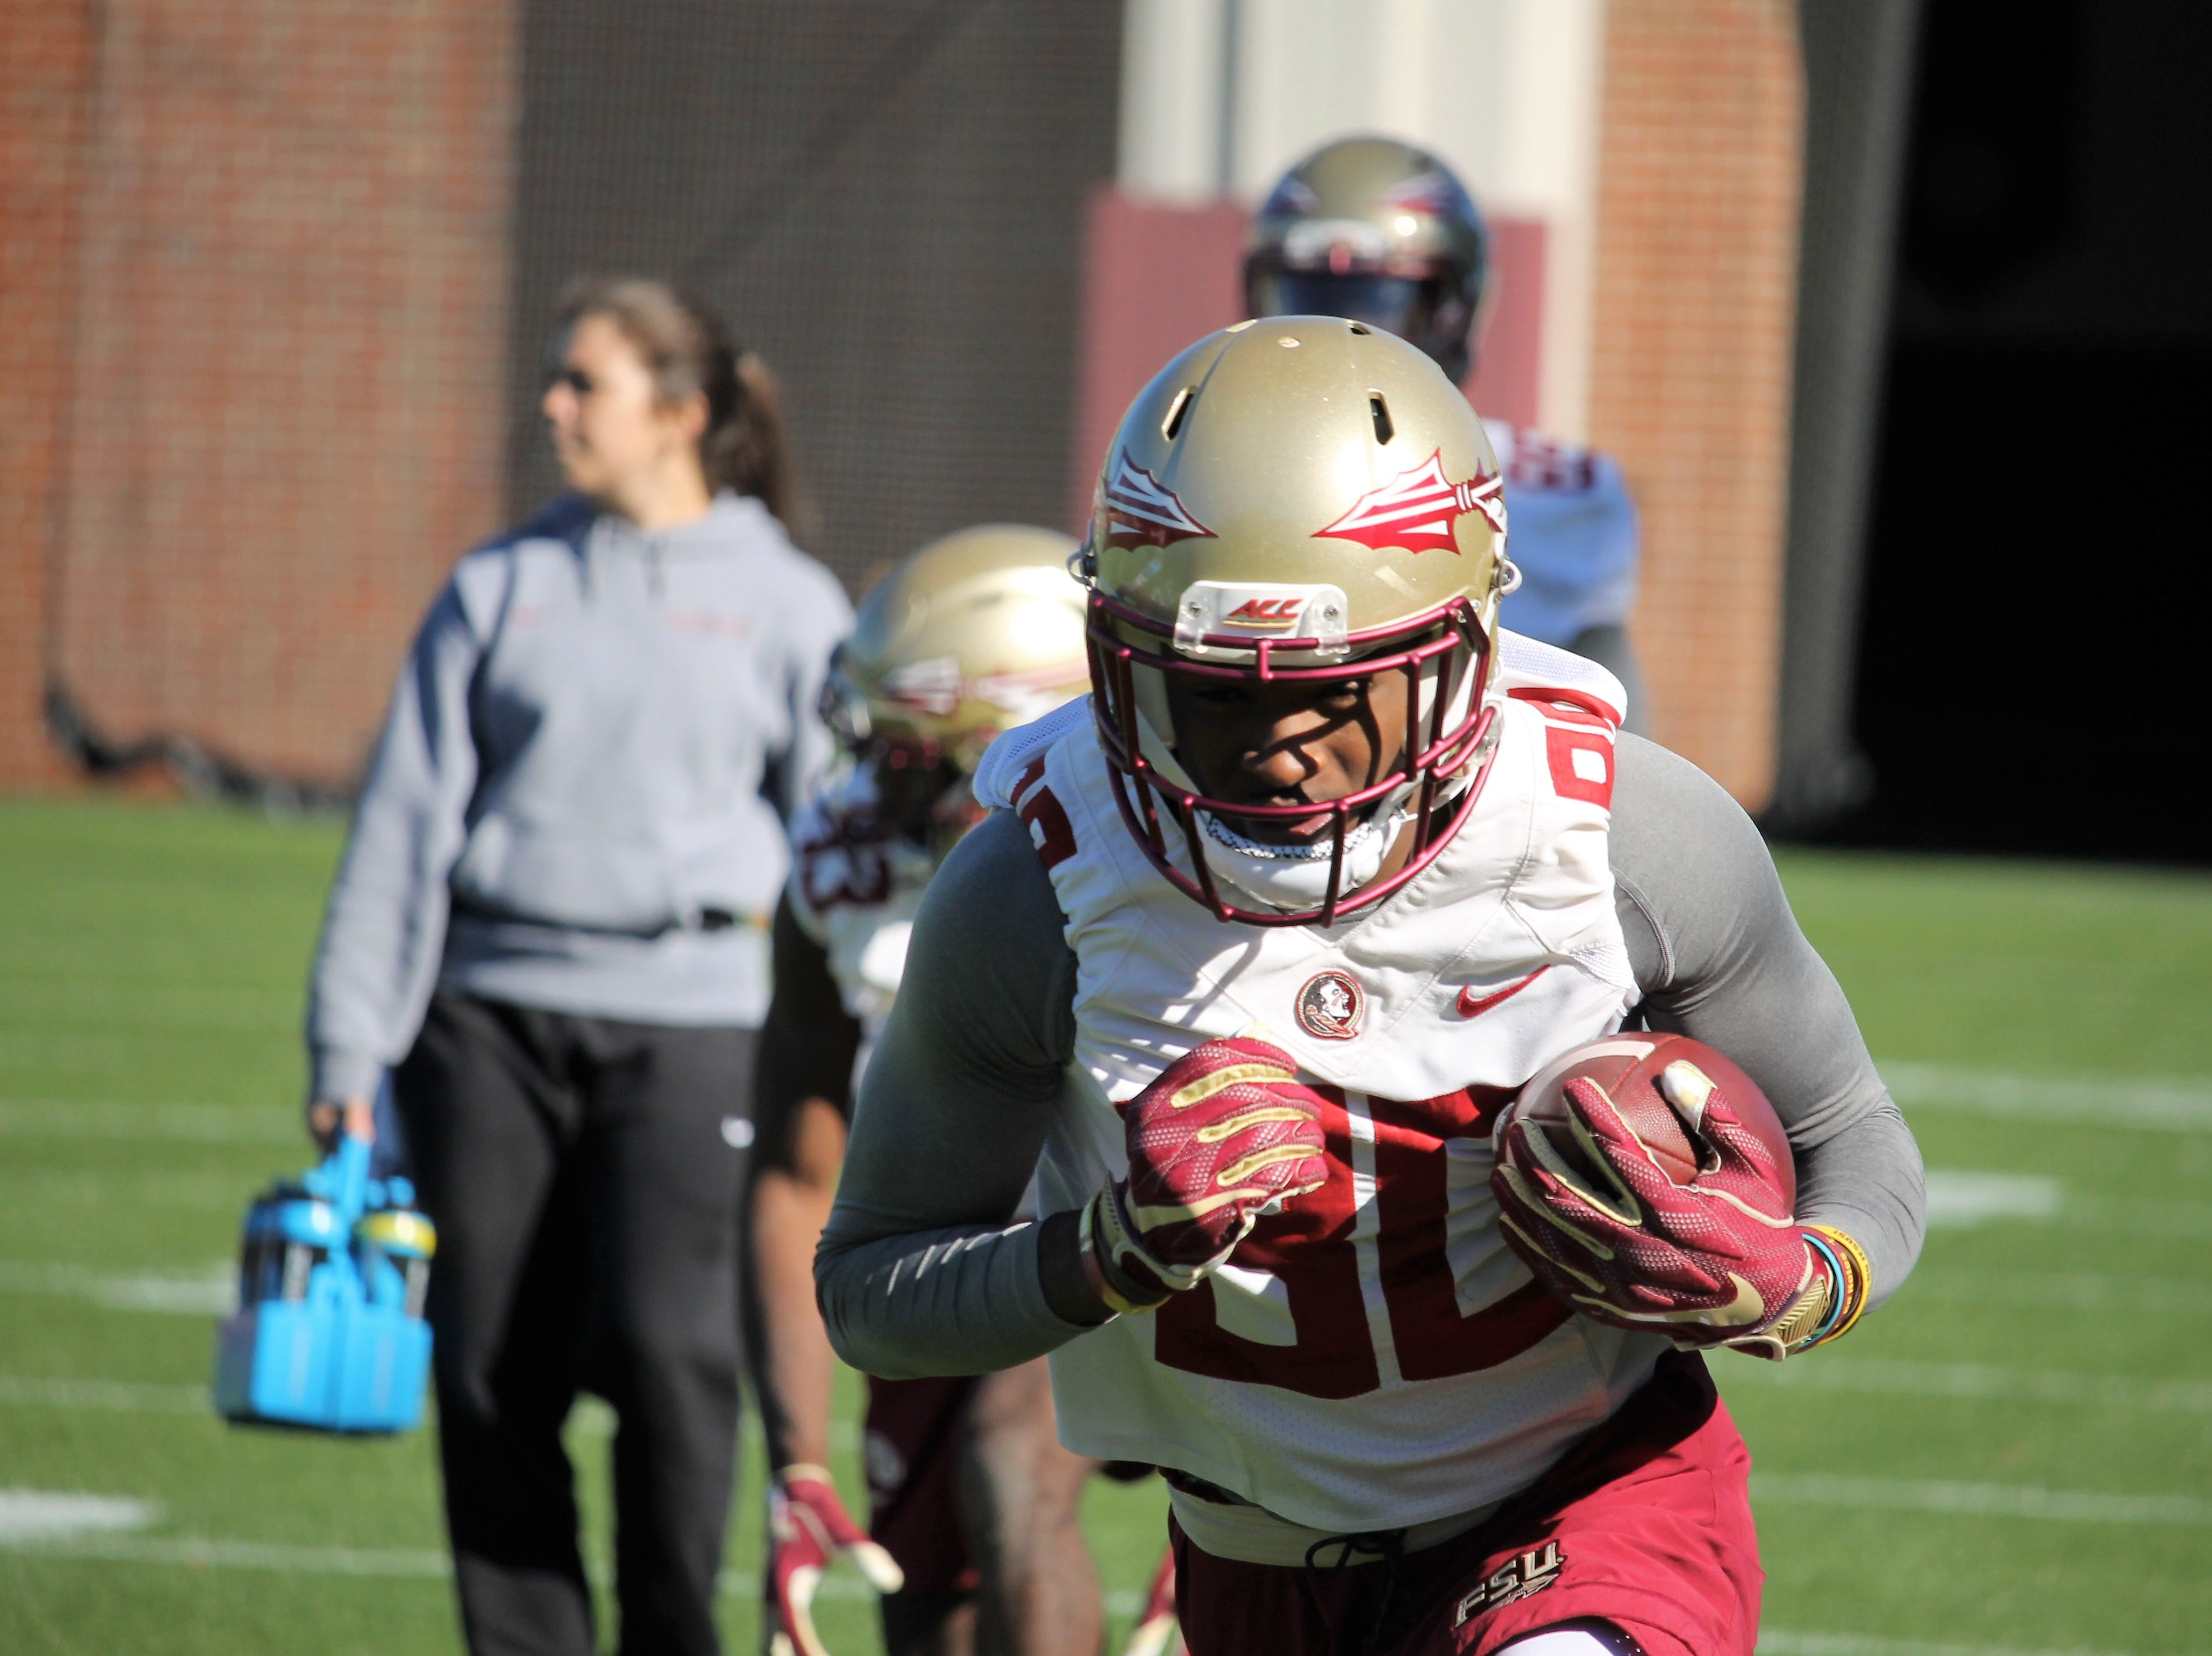 FSU wide receiver Ontaria Wilson at FSU football practice on March 6, 2019.